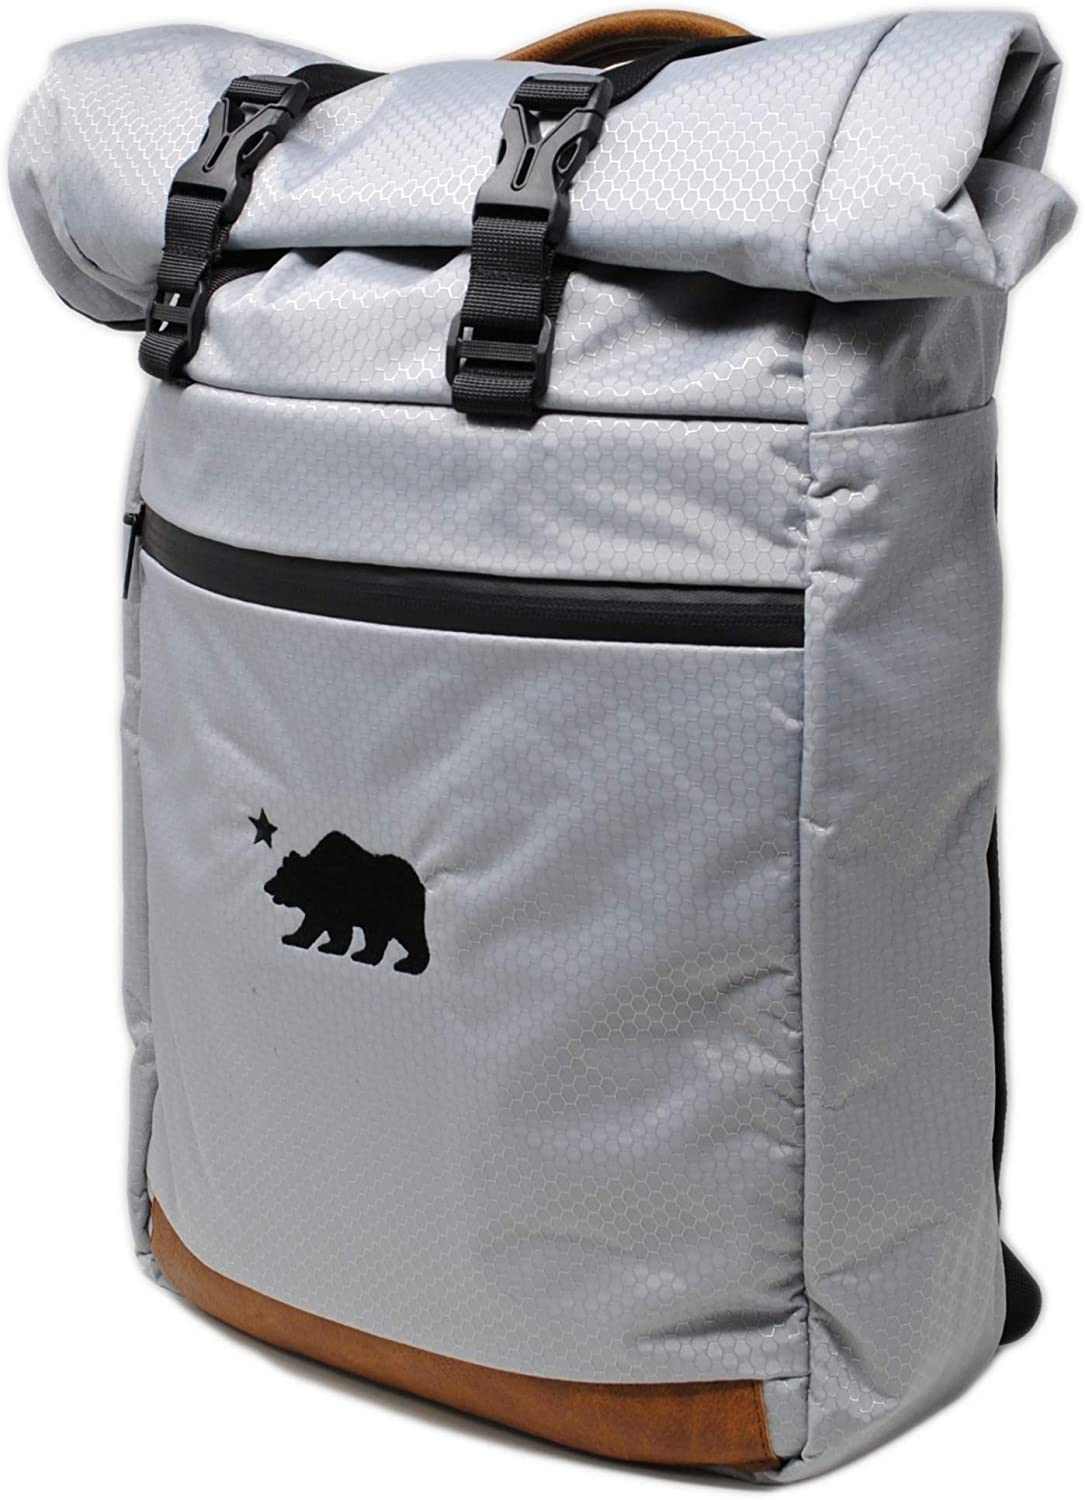 Cali Crusher 100 Smell Proof Roll Top Backpack